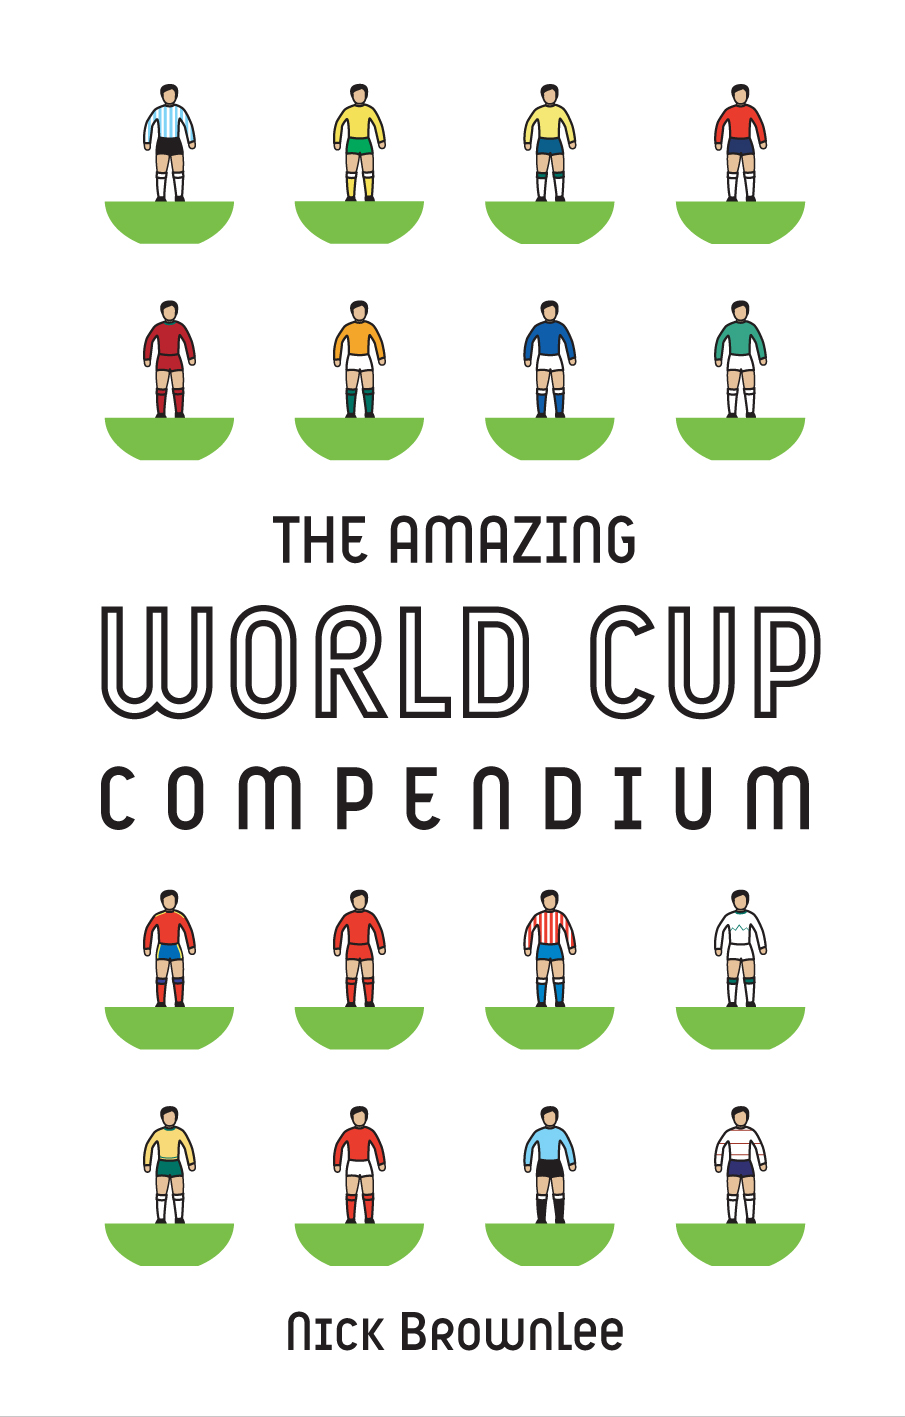 The Amazing World Cup Compendium